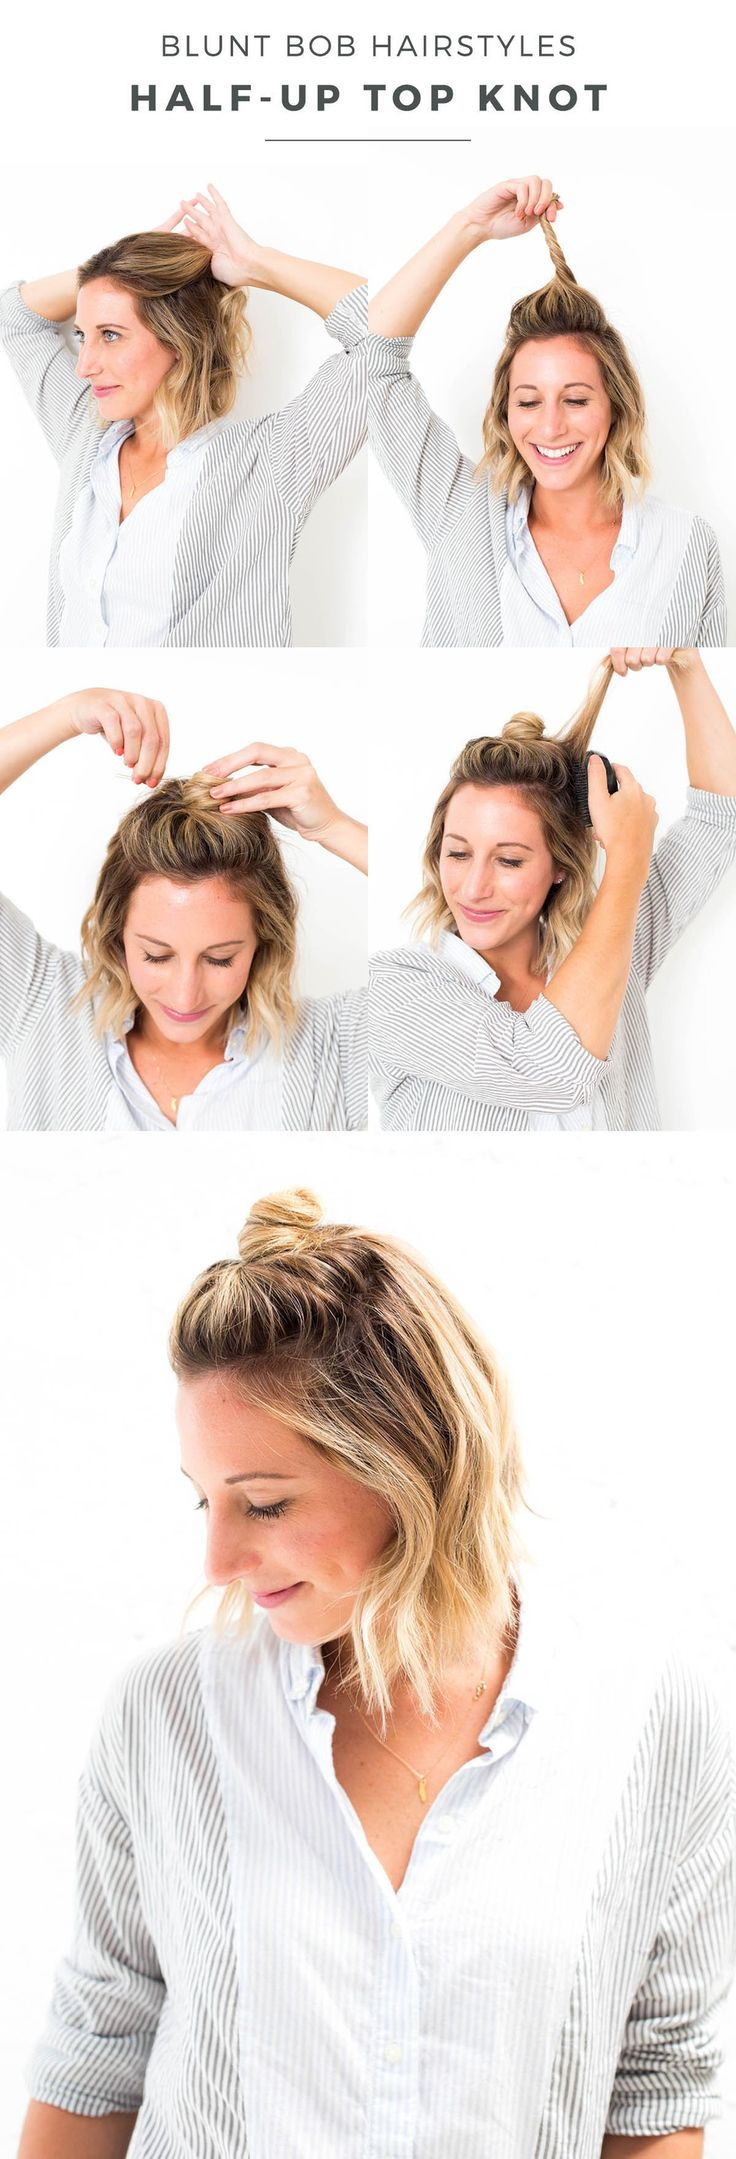 Now that I've finally mastered my everyday hairstyle with my new blunt bob, I've been spending some time playing around with some more fun looks. I've always been a fan of the half-up top knot, but felt like I couldn't get the edgy vibe I was going for with my long hair. Now that I've got this new b...